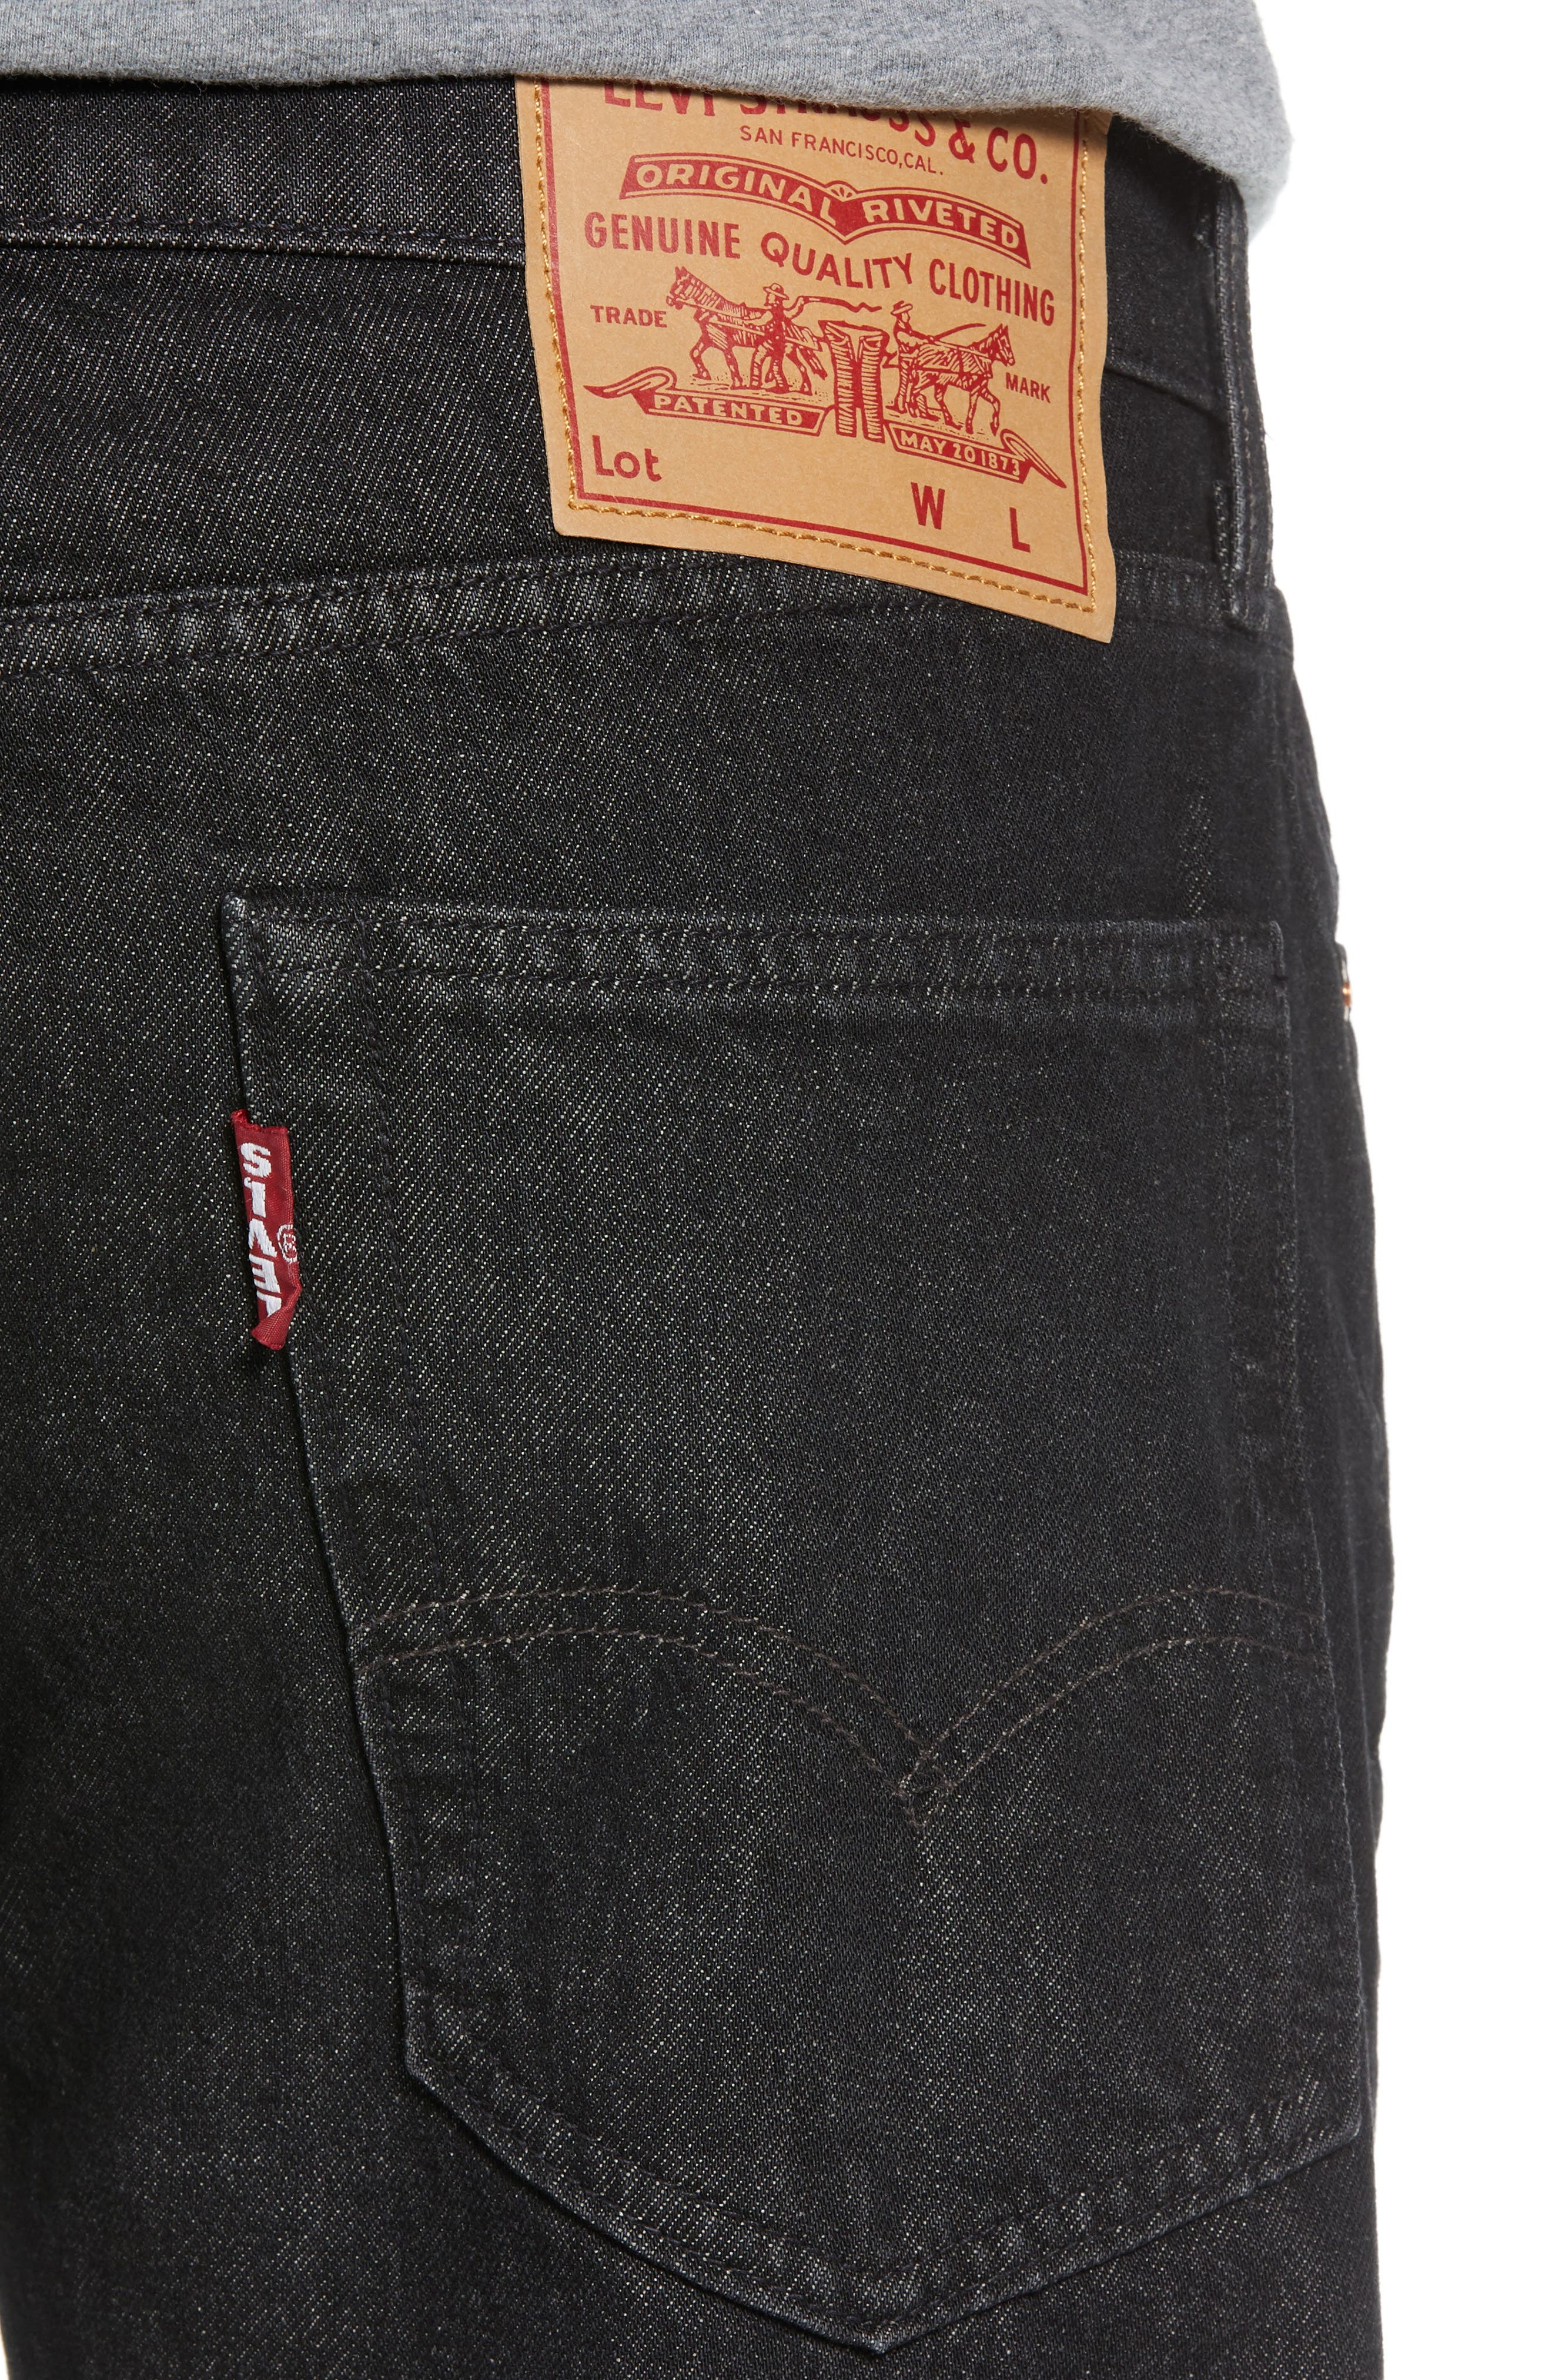 Hi-Ball Straight Fit Jeans,                             Alternate thumbnail 4, color,                             001